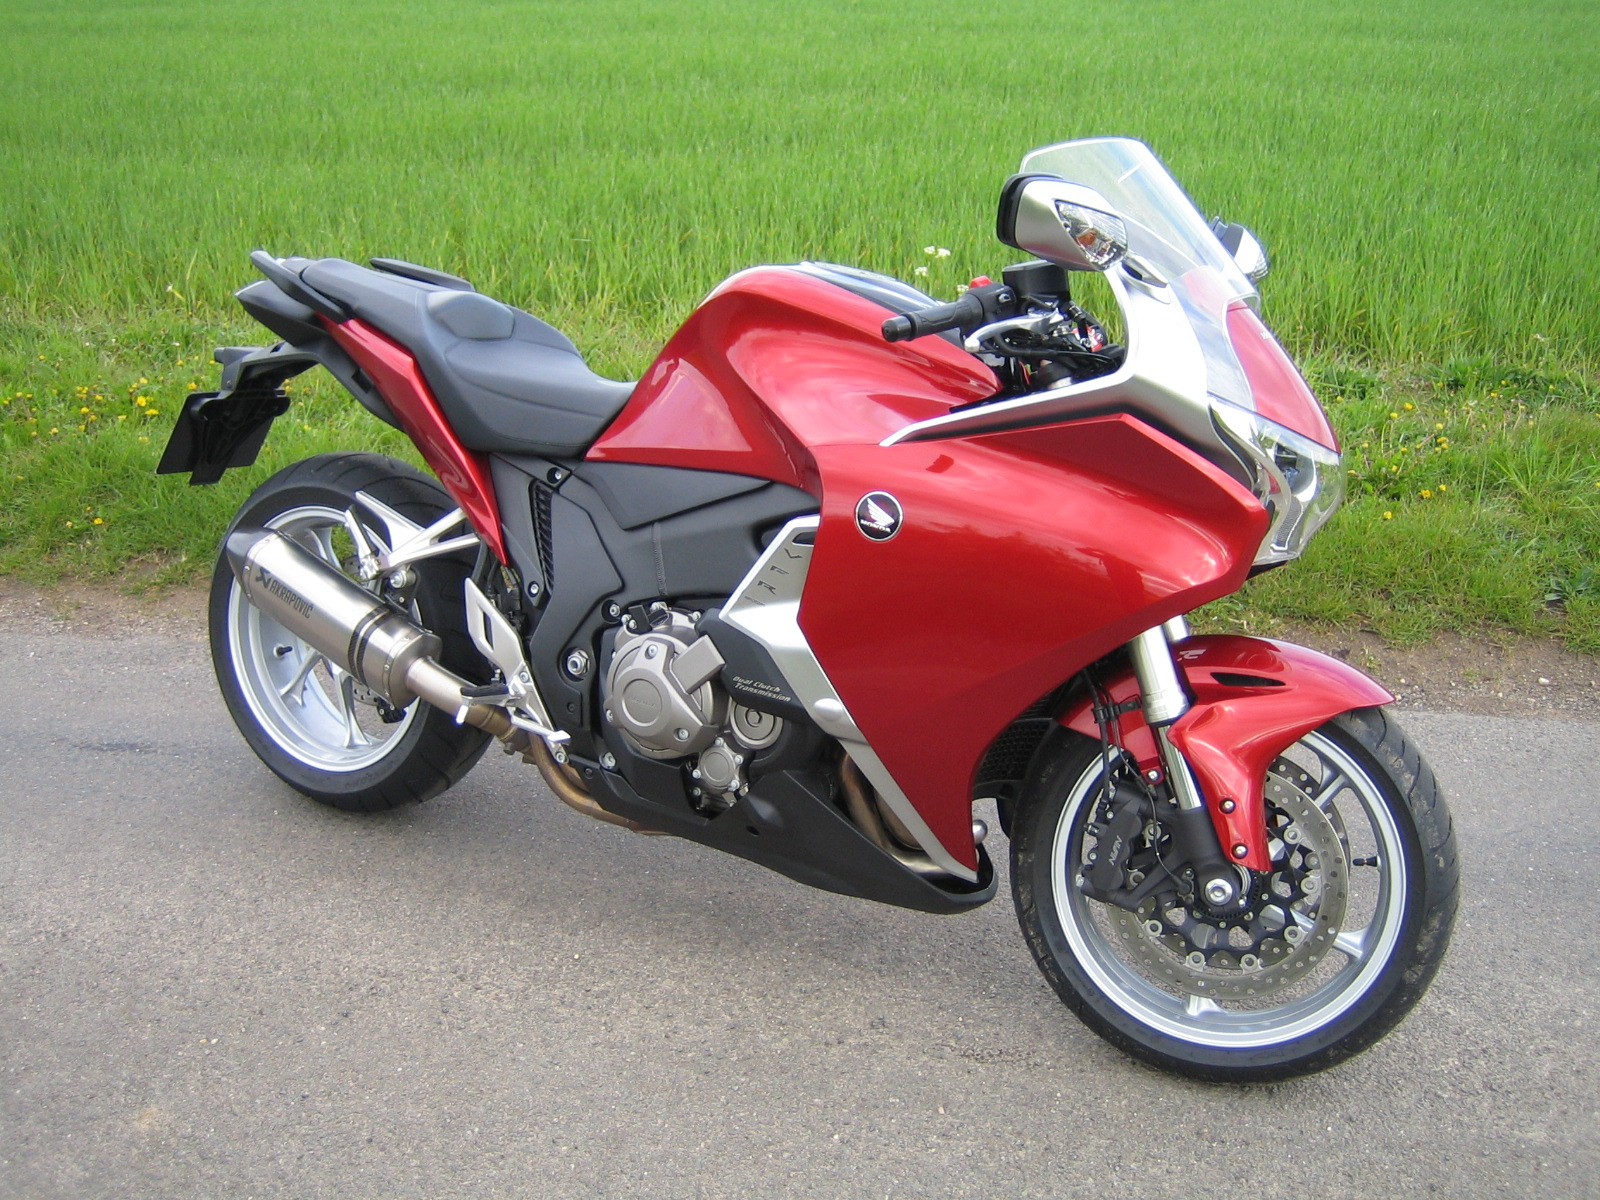 honda vfr1200f dct road test automatic bike silky